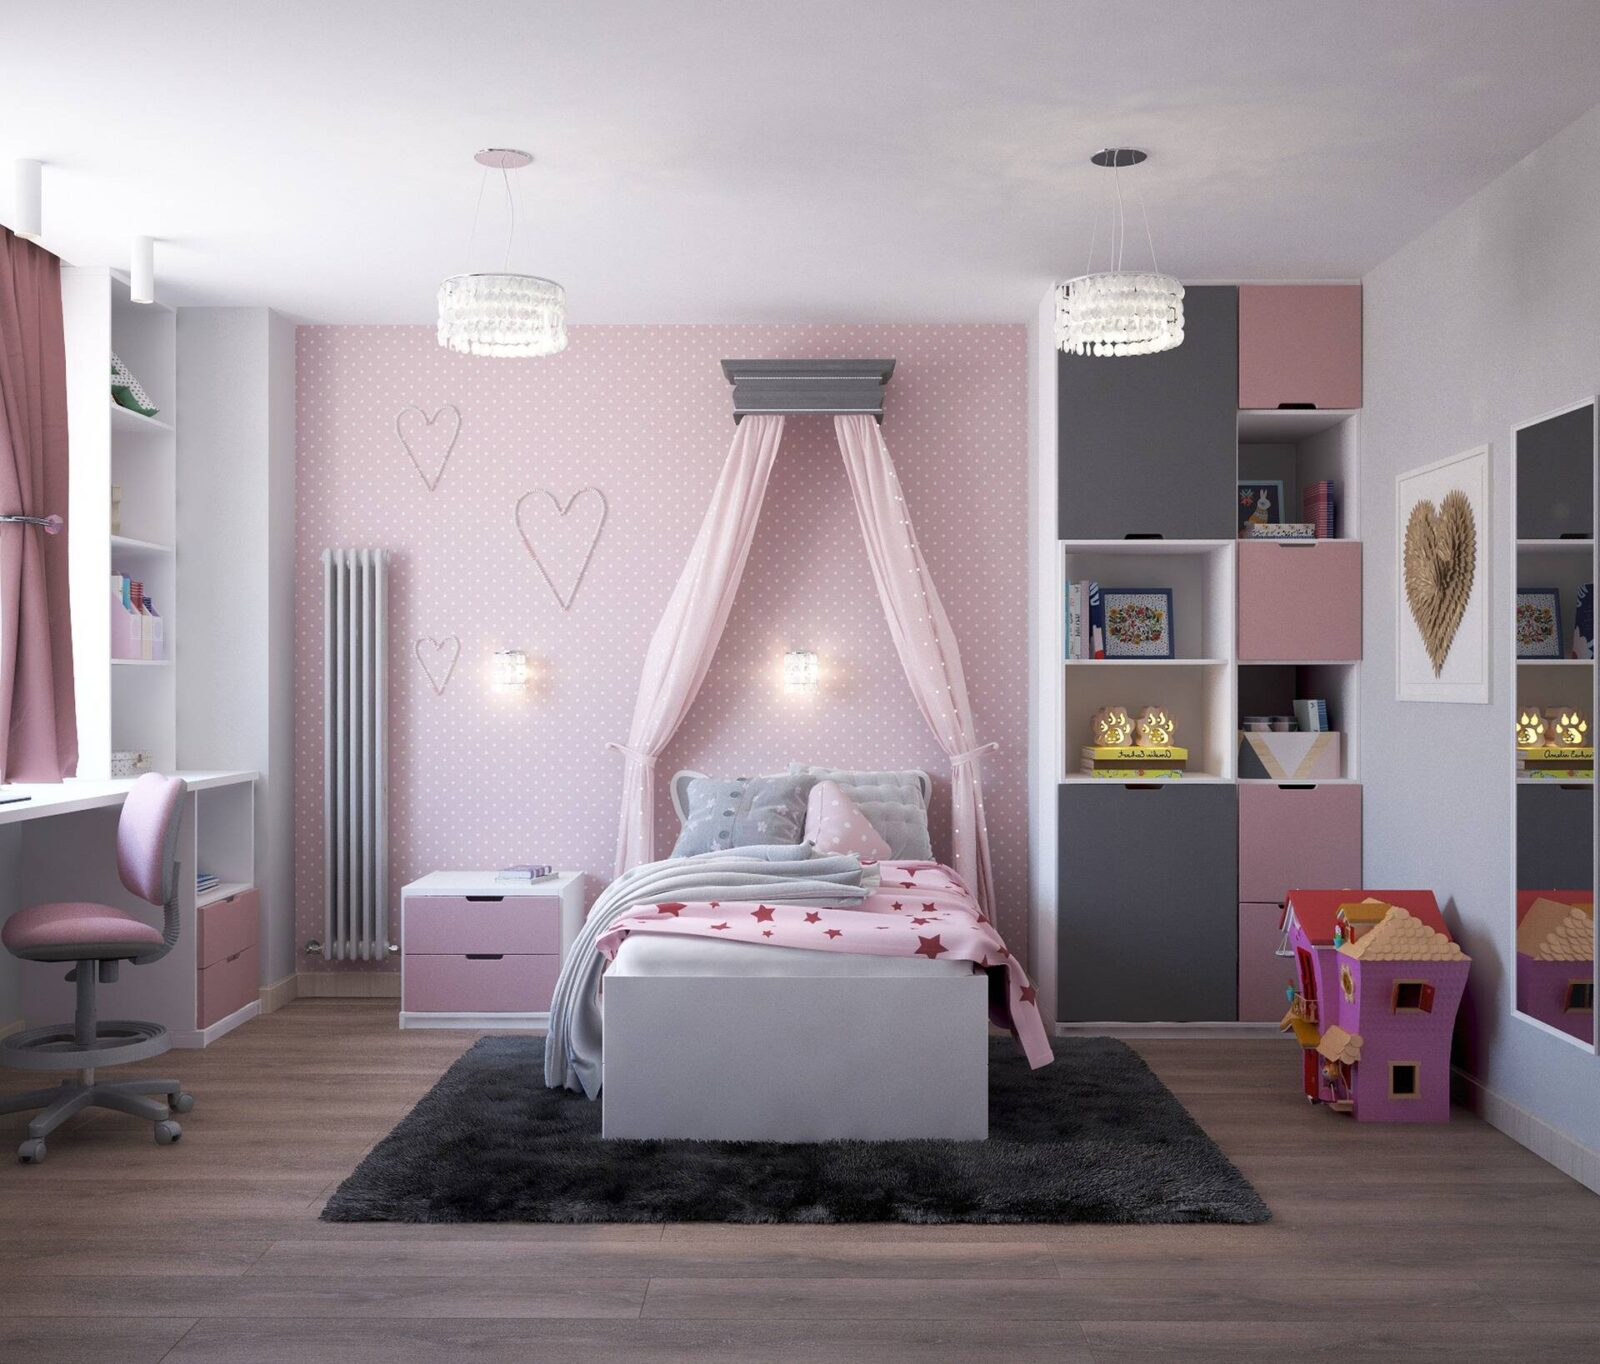 Budget-friendly DIY interiors for your kids room